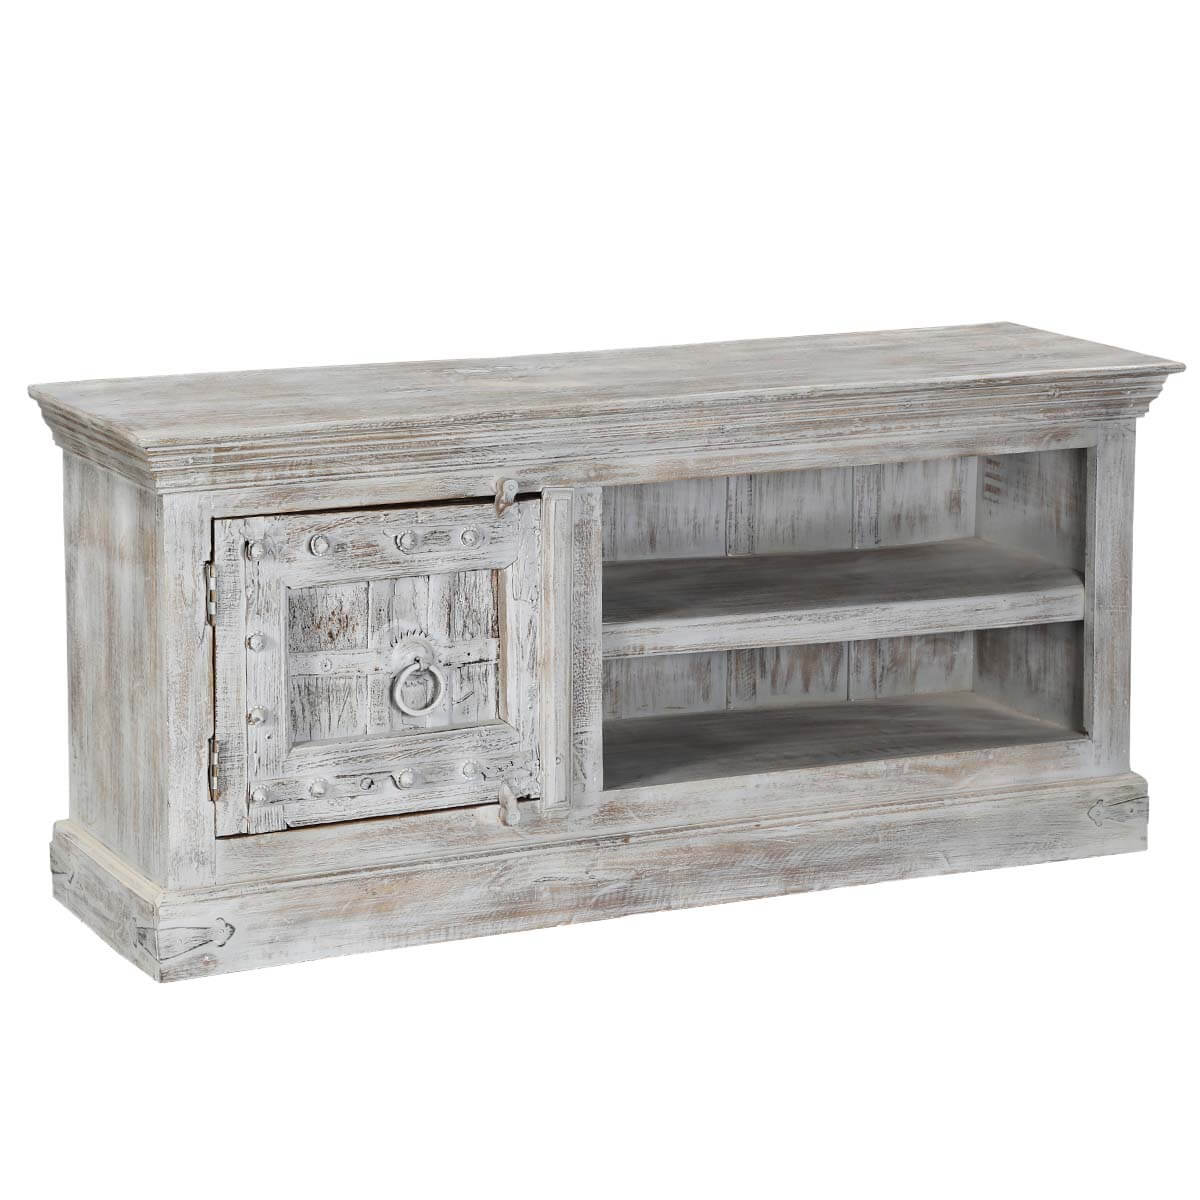 Palazzo 59 Rustic Handcrafted Solid Wood Media Storage Console